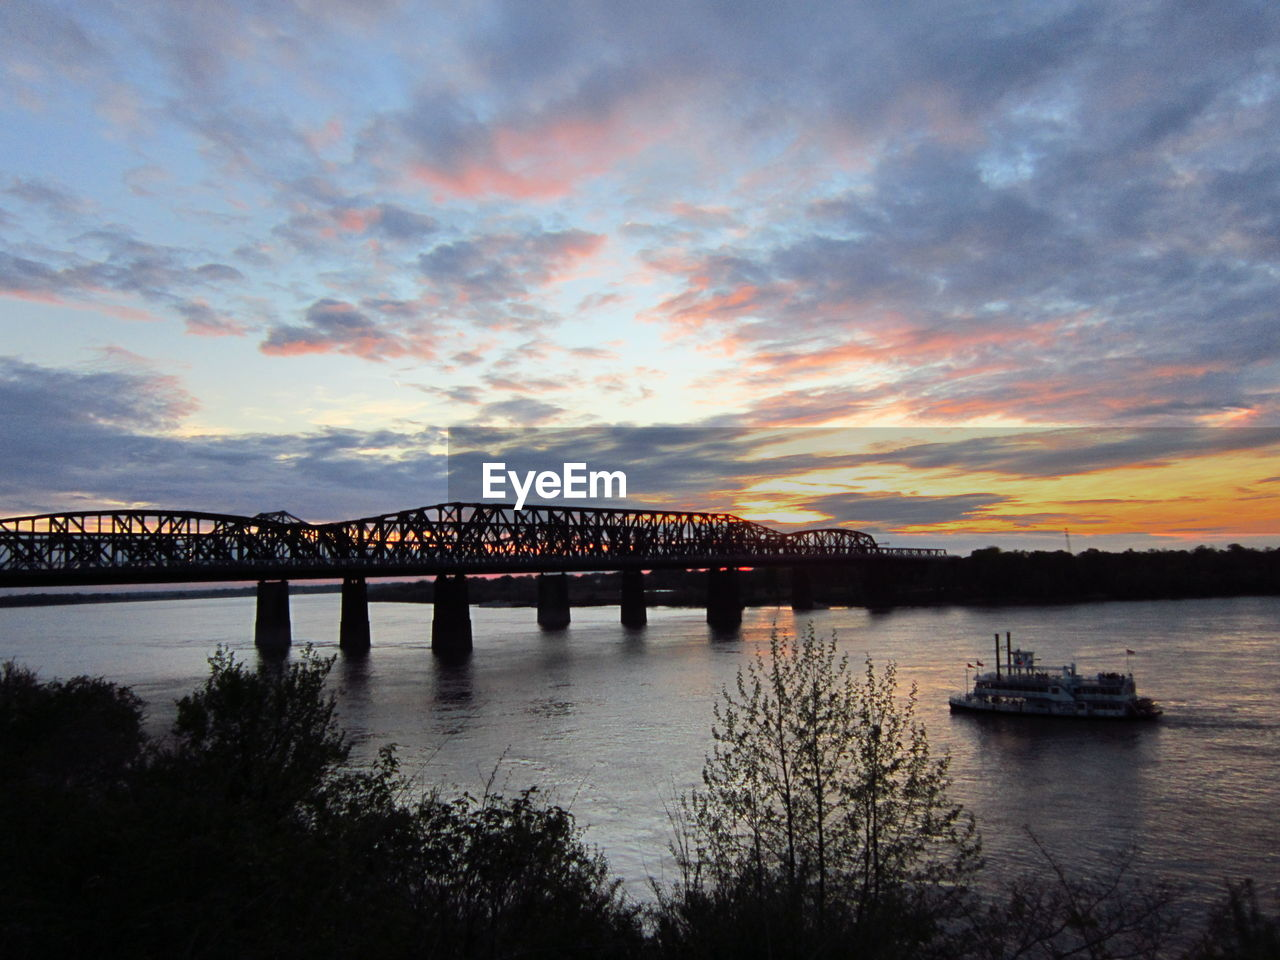 water, sky, sunset, bridge - man made structure, cloud - sky, river, transportation, built structure, architecture, nature, connection, scenics, beauty in nature, no people, nautical vessel, waterfront, travel destinations, outdoors, tranquility, city, day